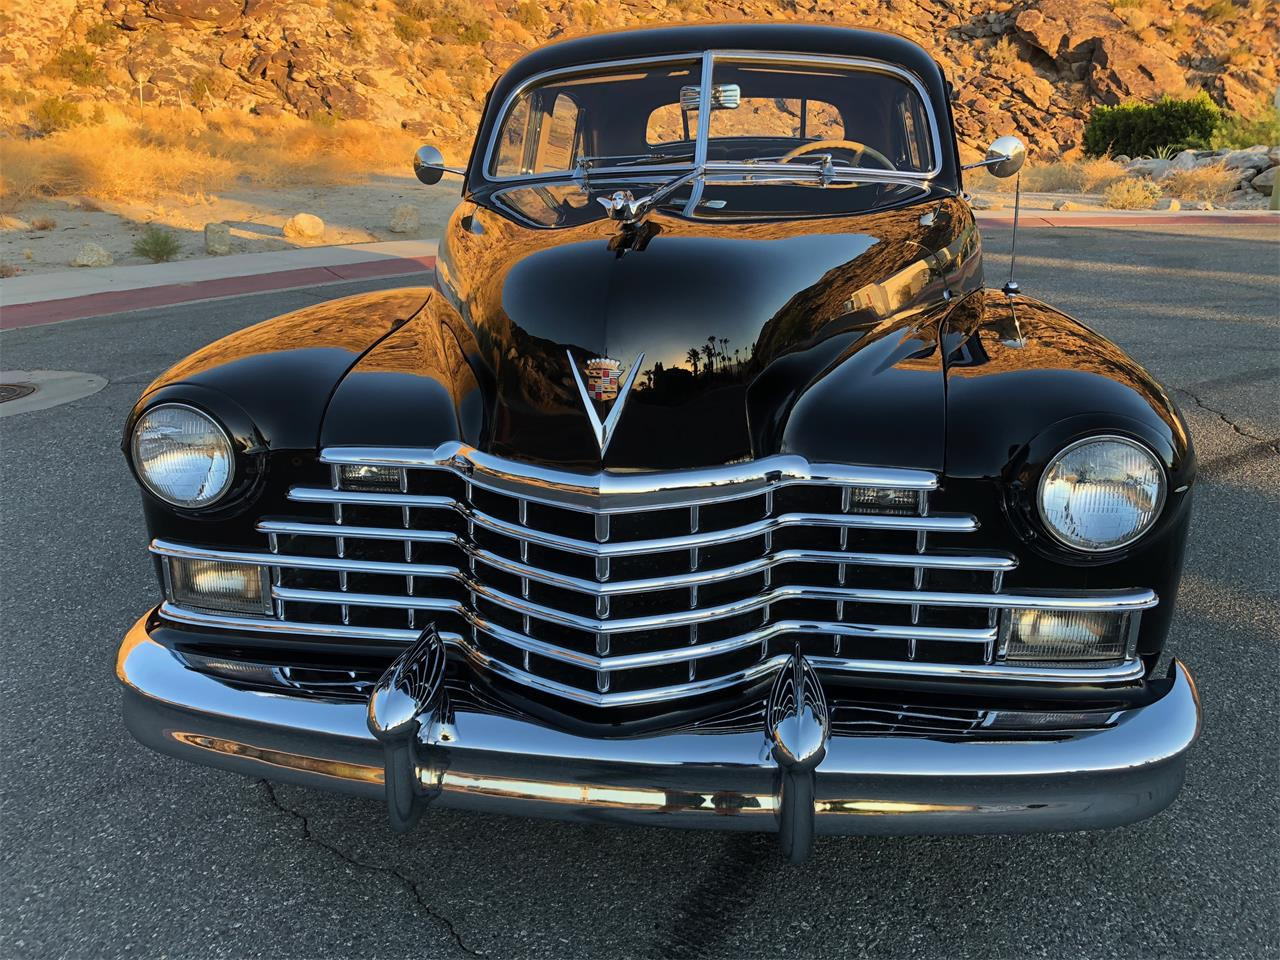 Large Picture of 1946 Cadillac Fleetwood 60 Special - $42,500.00 Offered by a Private Seller - QMKK